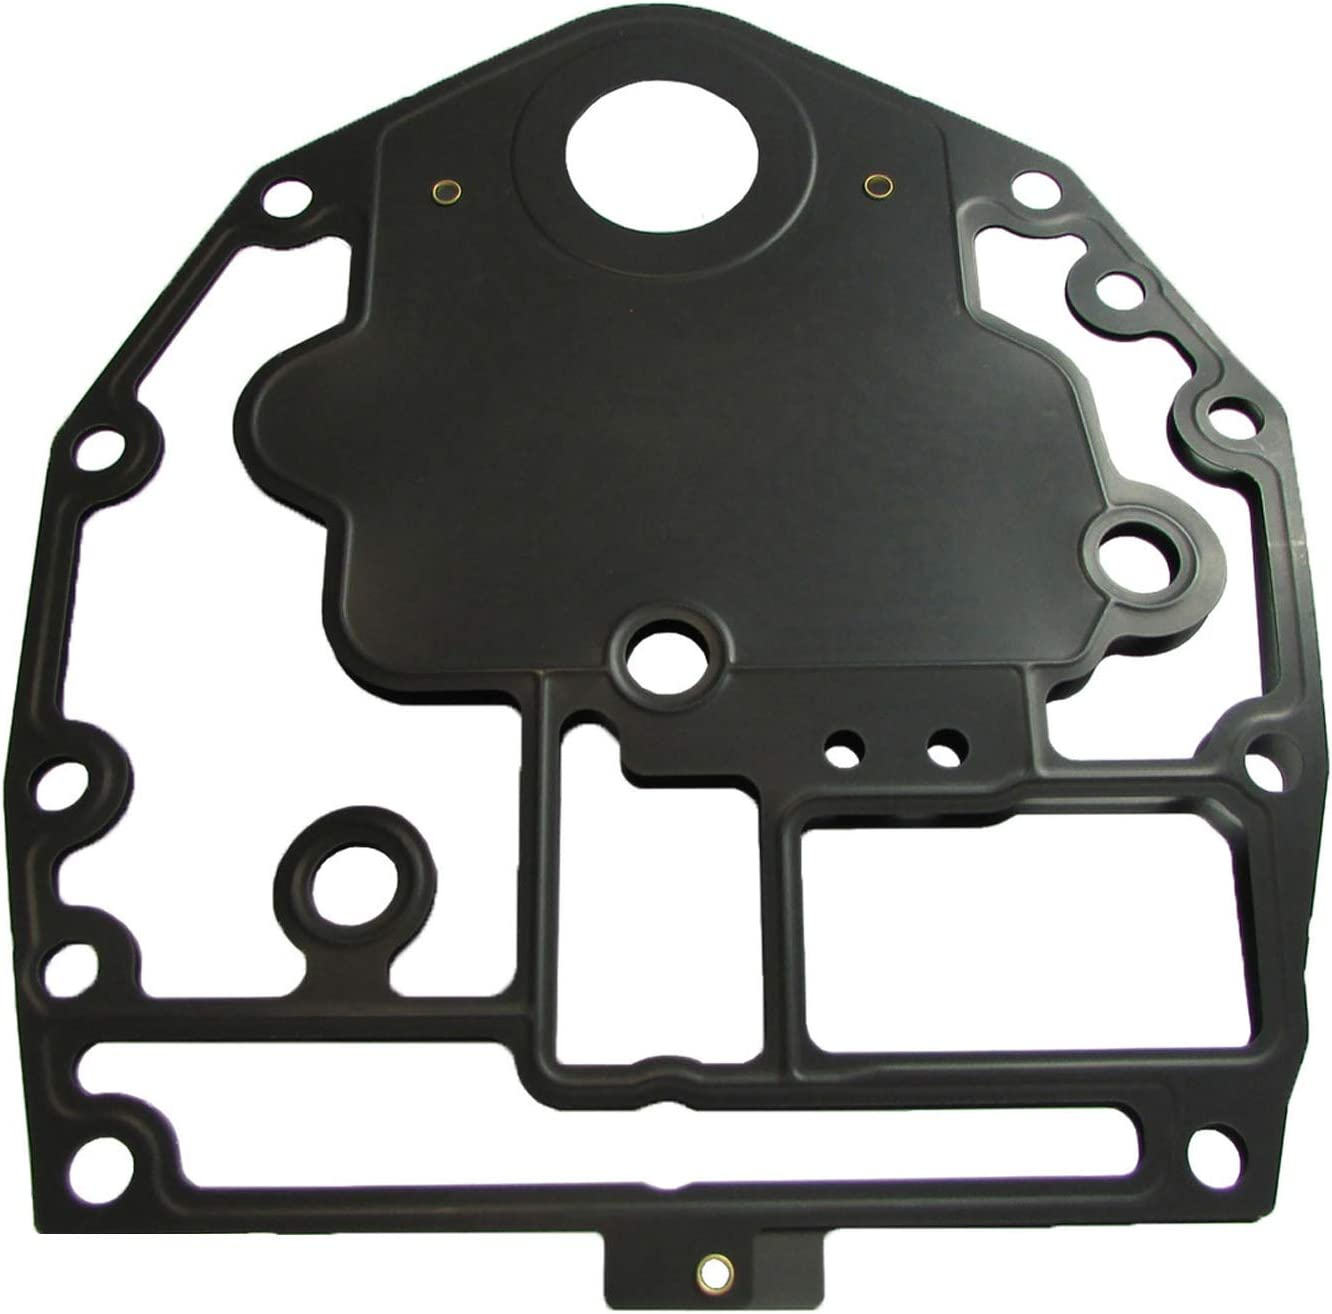 New Mercury Mercruiser Quicksilver Oem Part # 27-73666 Gasket